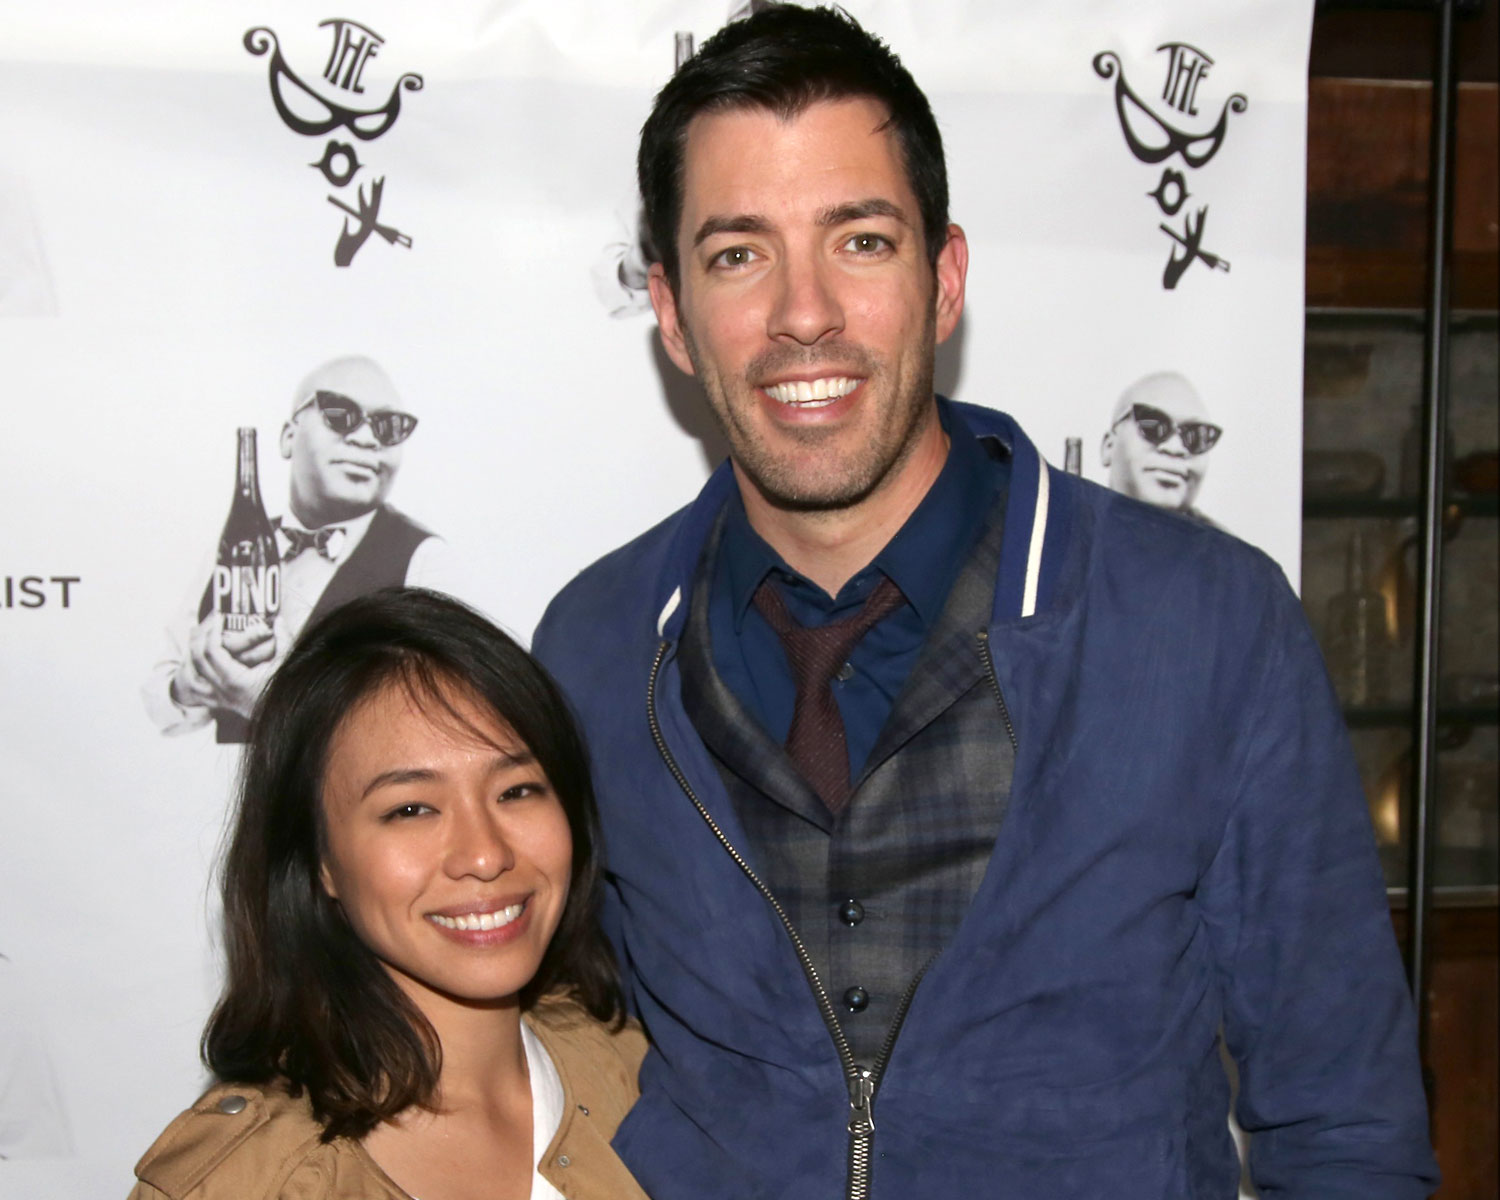 Drew Scott And Linda Phan Images: who are the property brothers